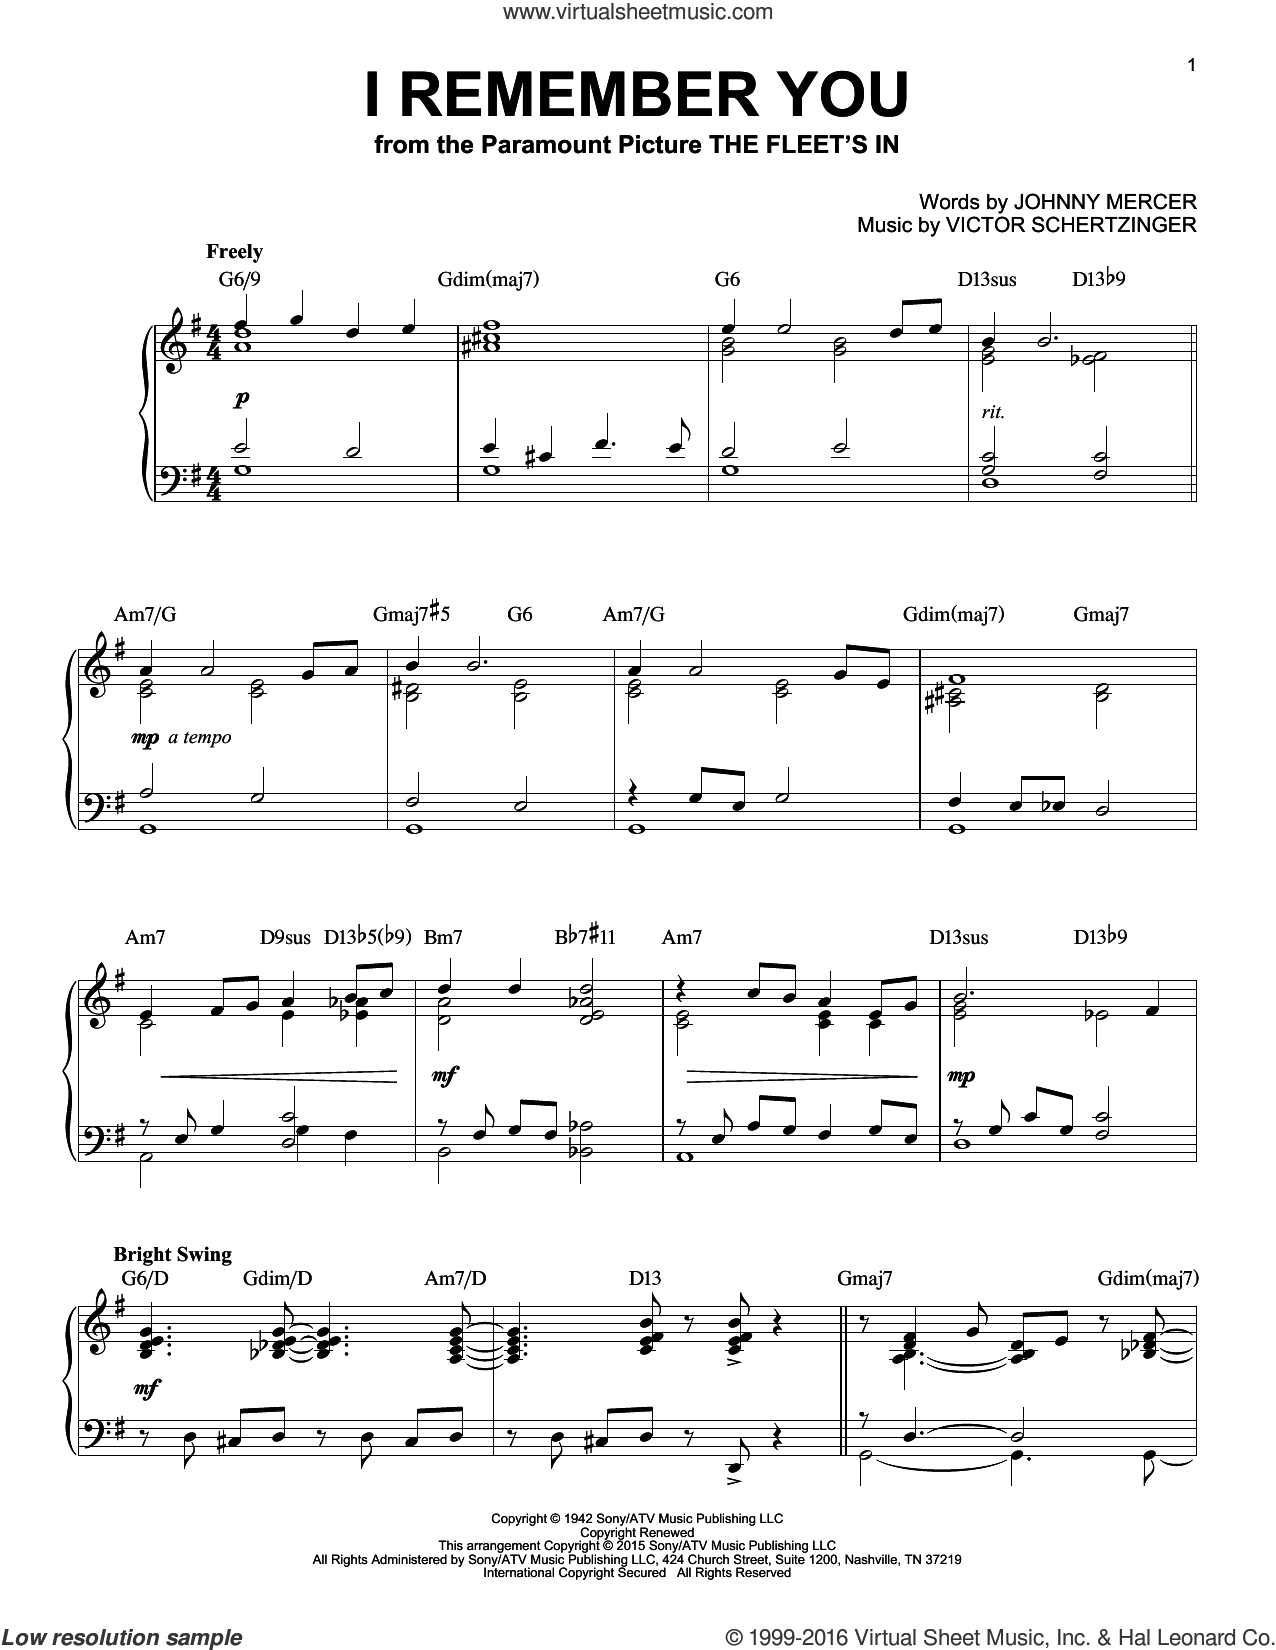 I Remember You [Jazz version] (arr. Brent Edstrom) sheet music for piano solo by Johnny Mercer, Jo Stafford and Victor Schertzinger, intermediate skill level